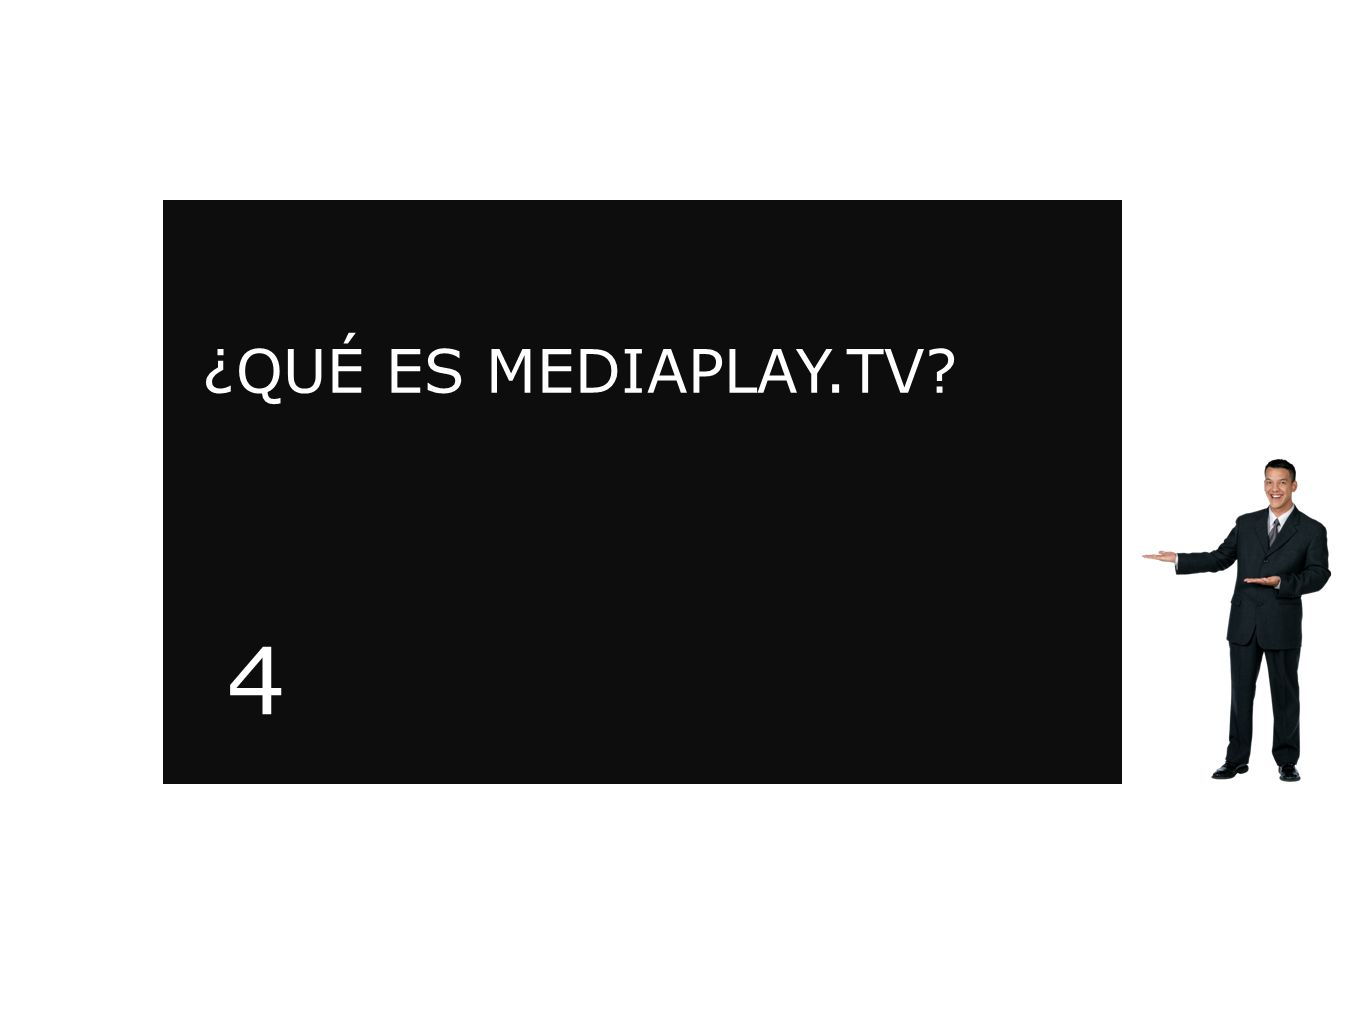 ¿QUÉ ES MEDIAPLAY.TV 4 MEDIAPLAY.TV